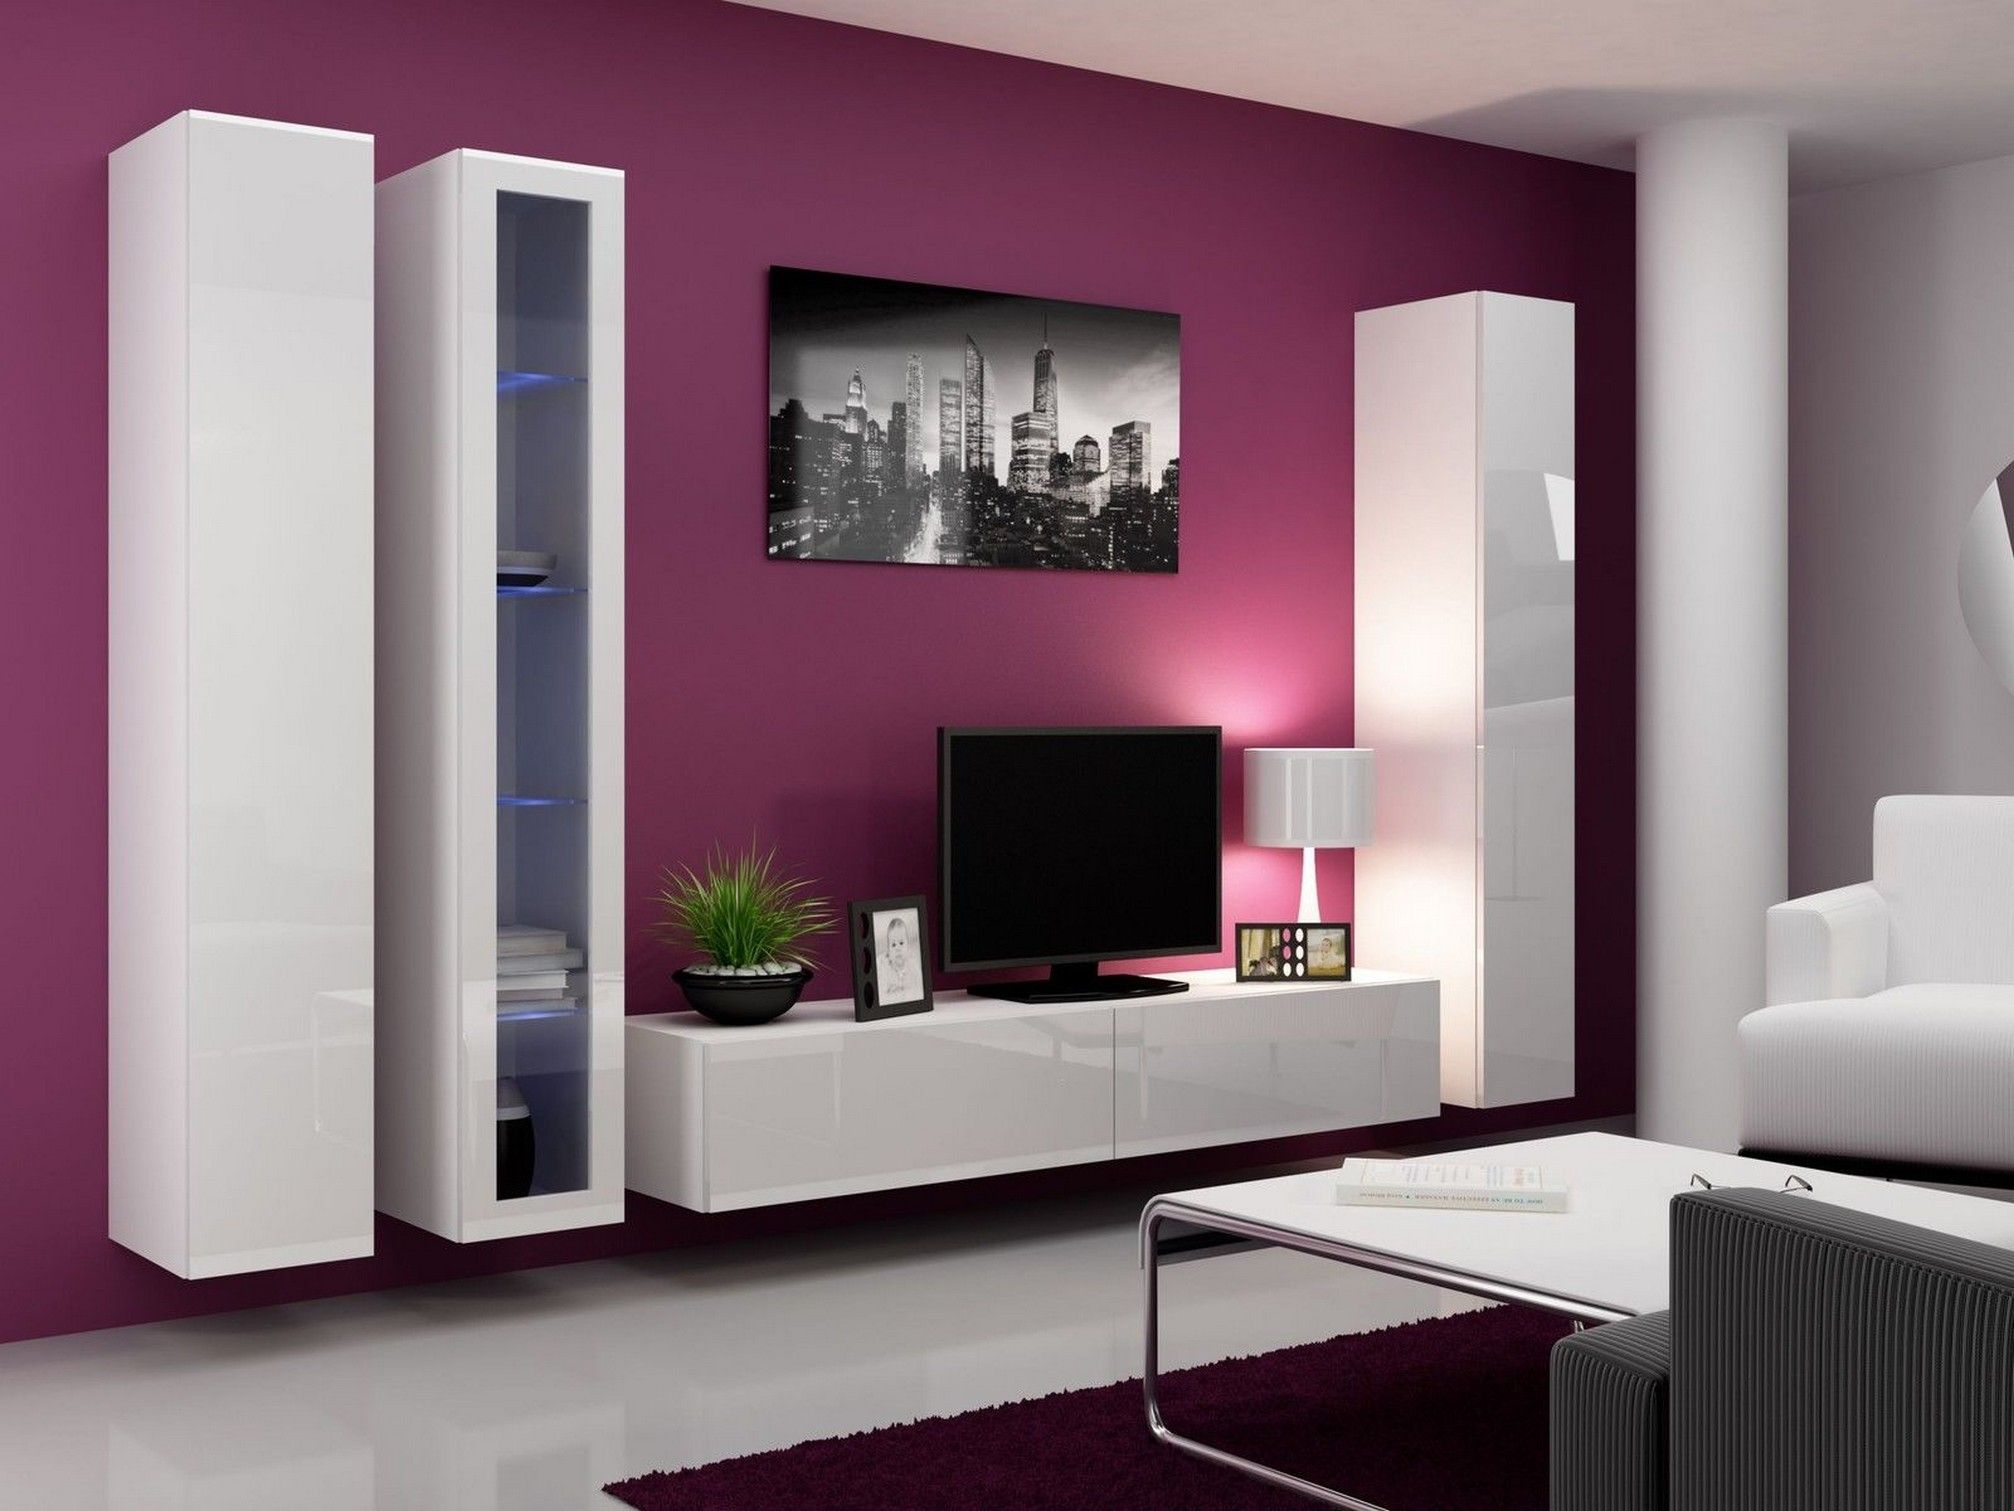 Tv Unit Design For Living Room Tv Wall Cabinets Living Room Wall Mounted Tv Unit Designs